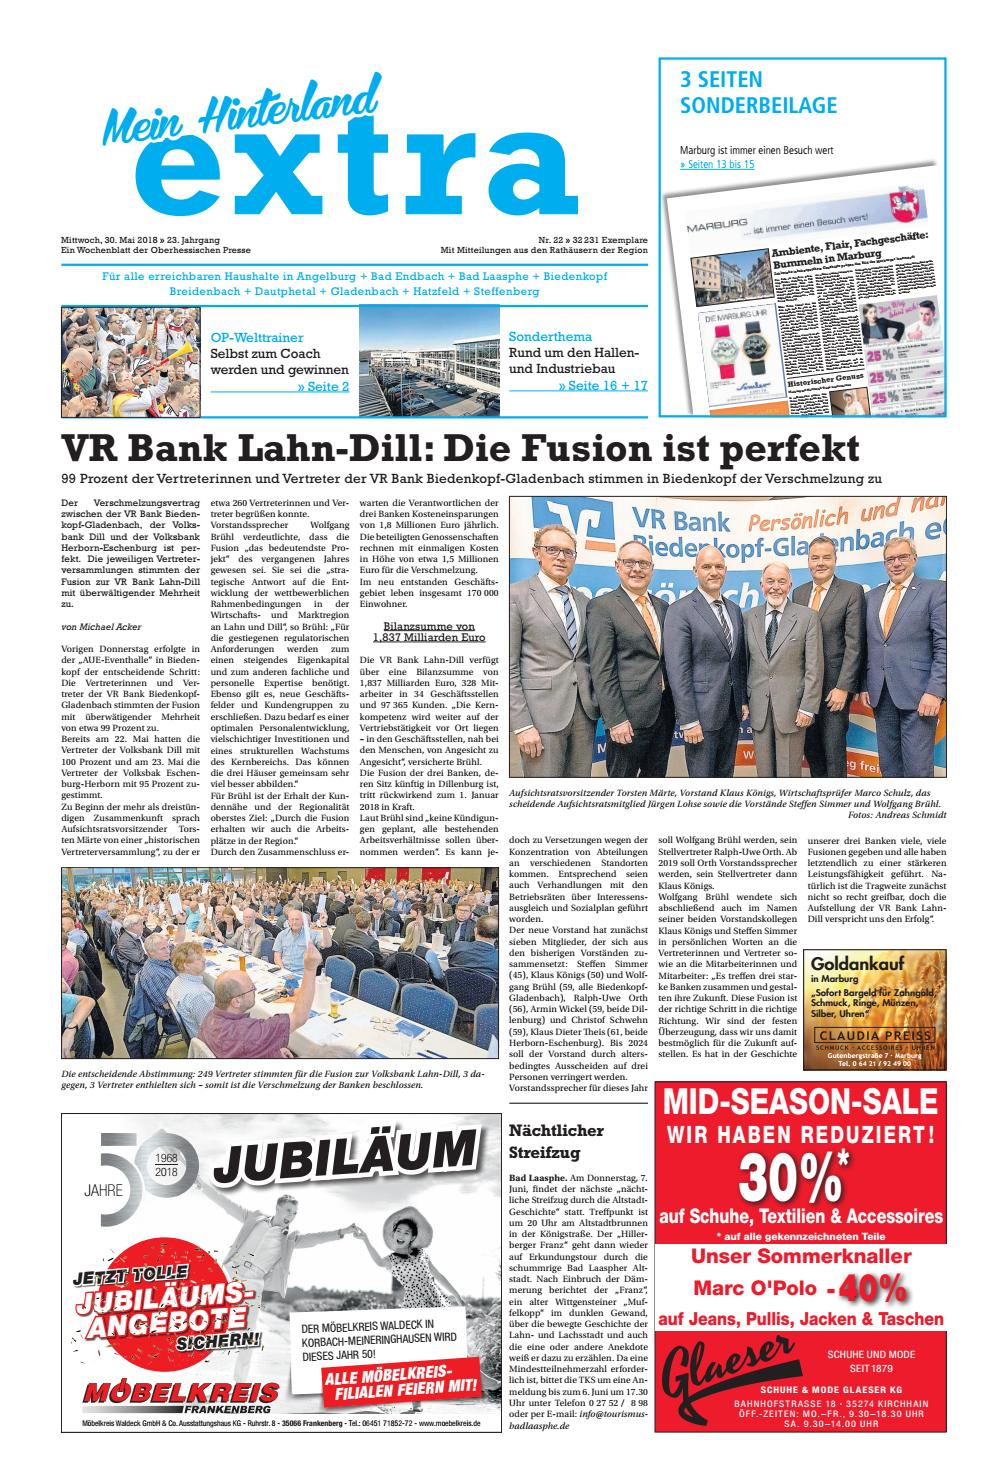 Mein hinterland extra et 30 05 2018 by Petra Fischer - issuu e09802fa8d